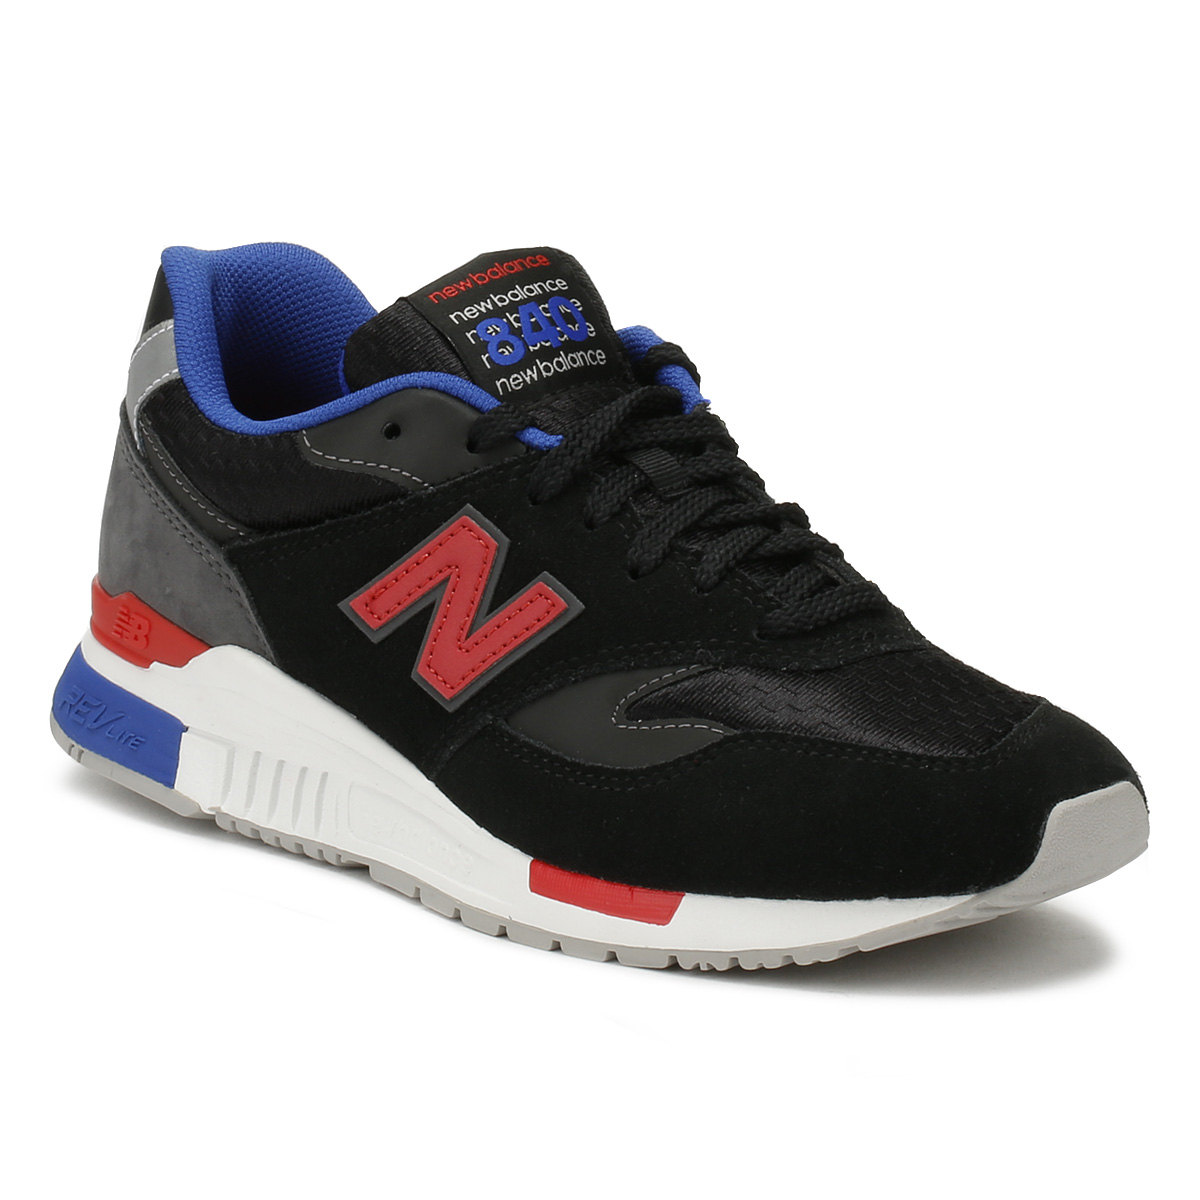 New Balance Mens Trainers Black   Magnet 840 Lace Up Sport Casual ... 04a1db53588f